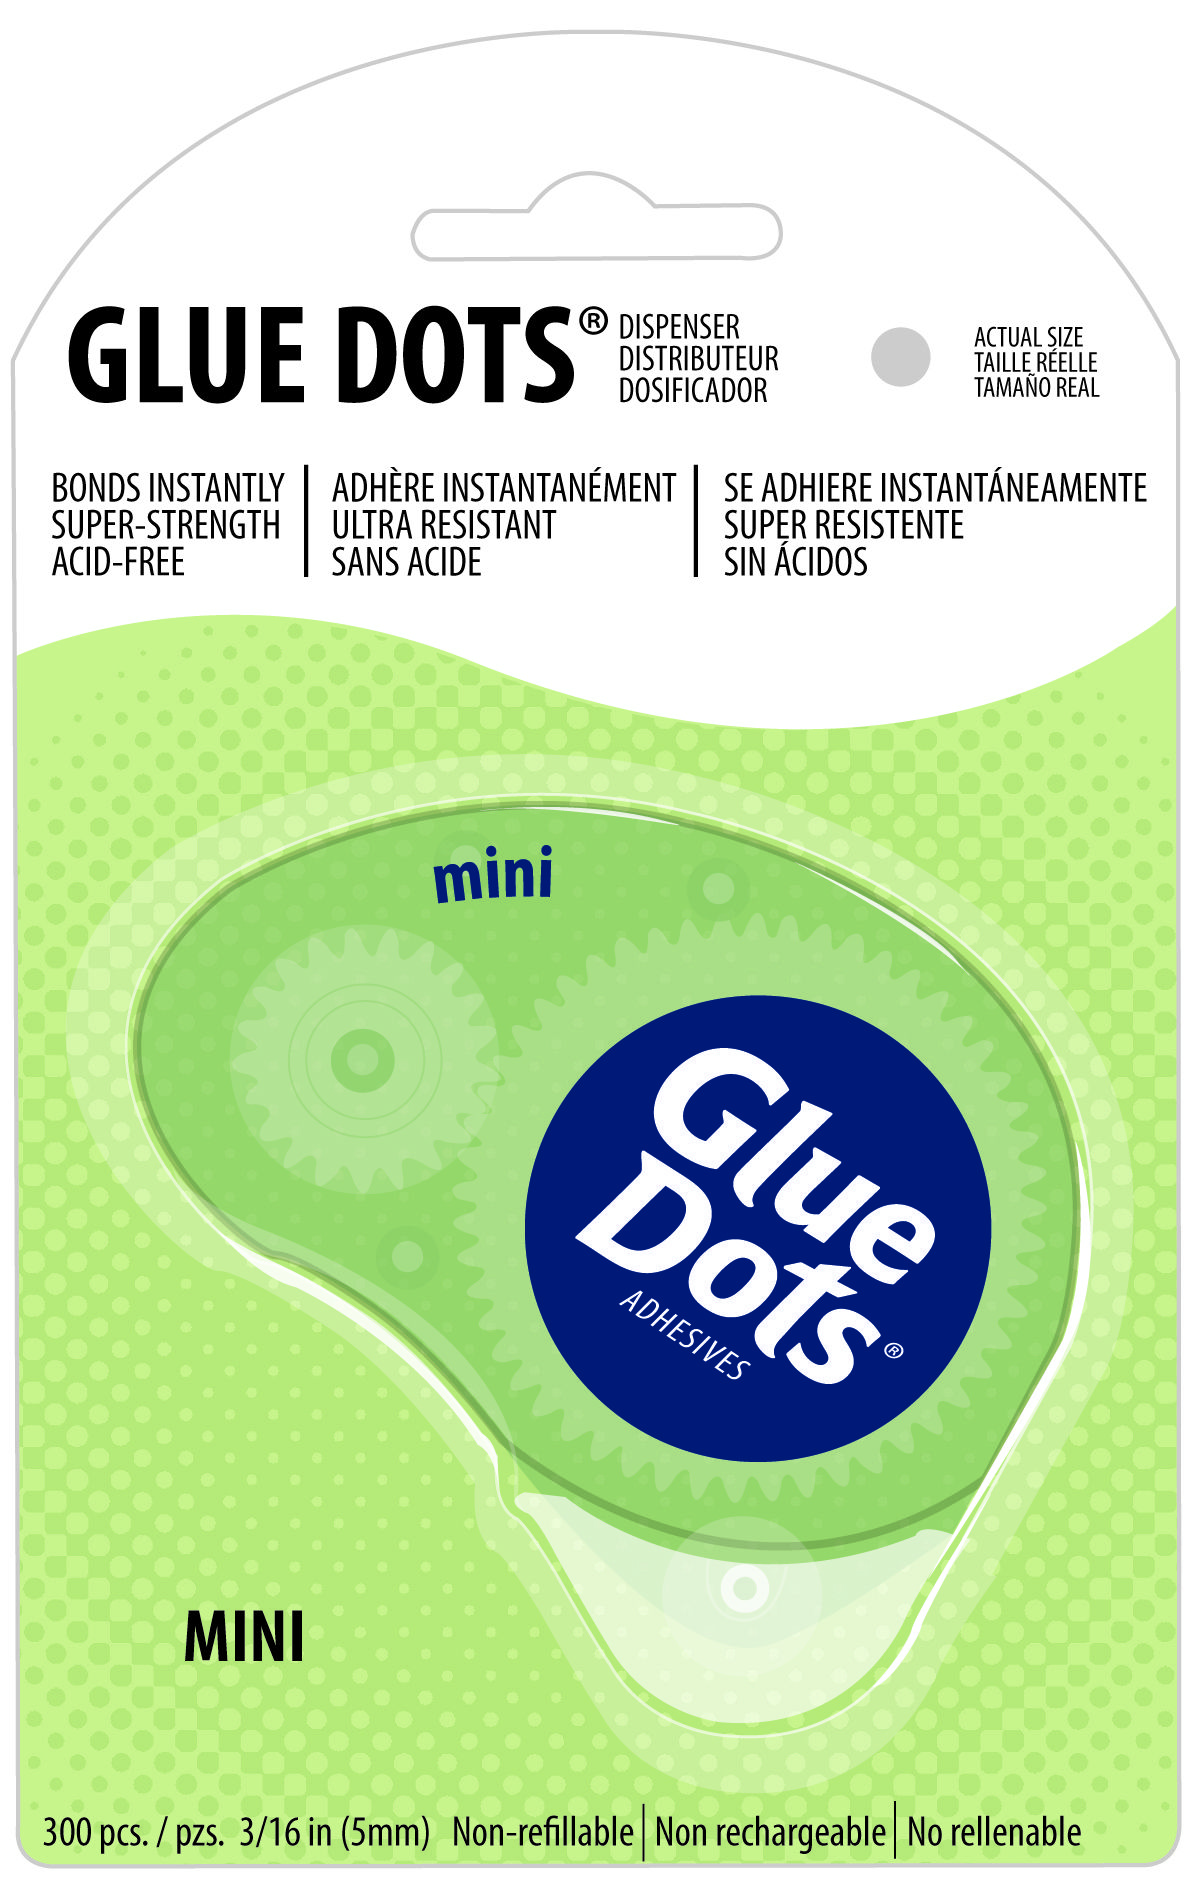 Applying Mini GlueDots is faster with this easytouse